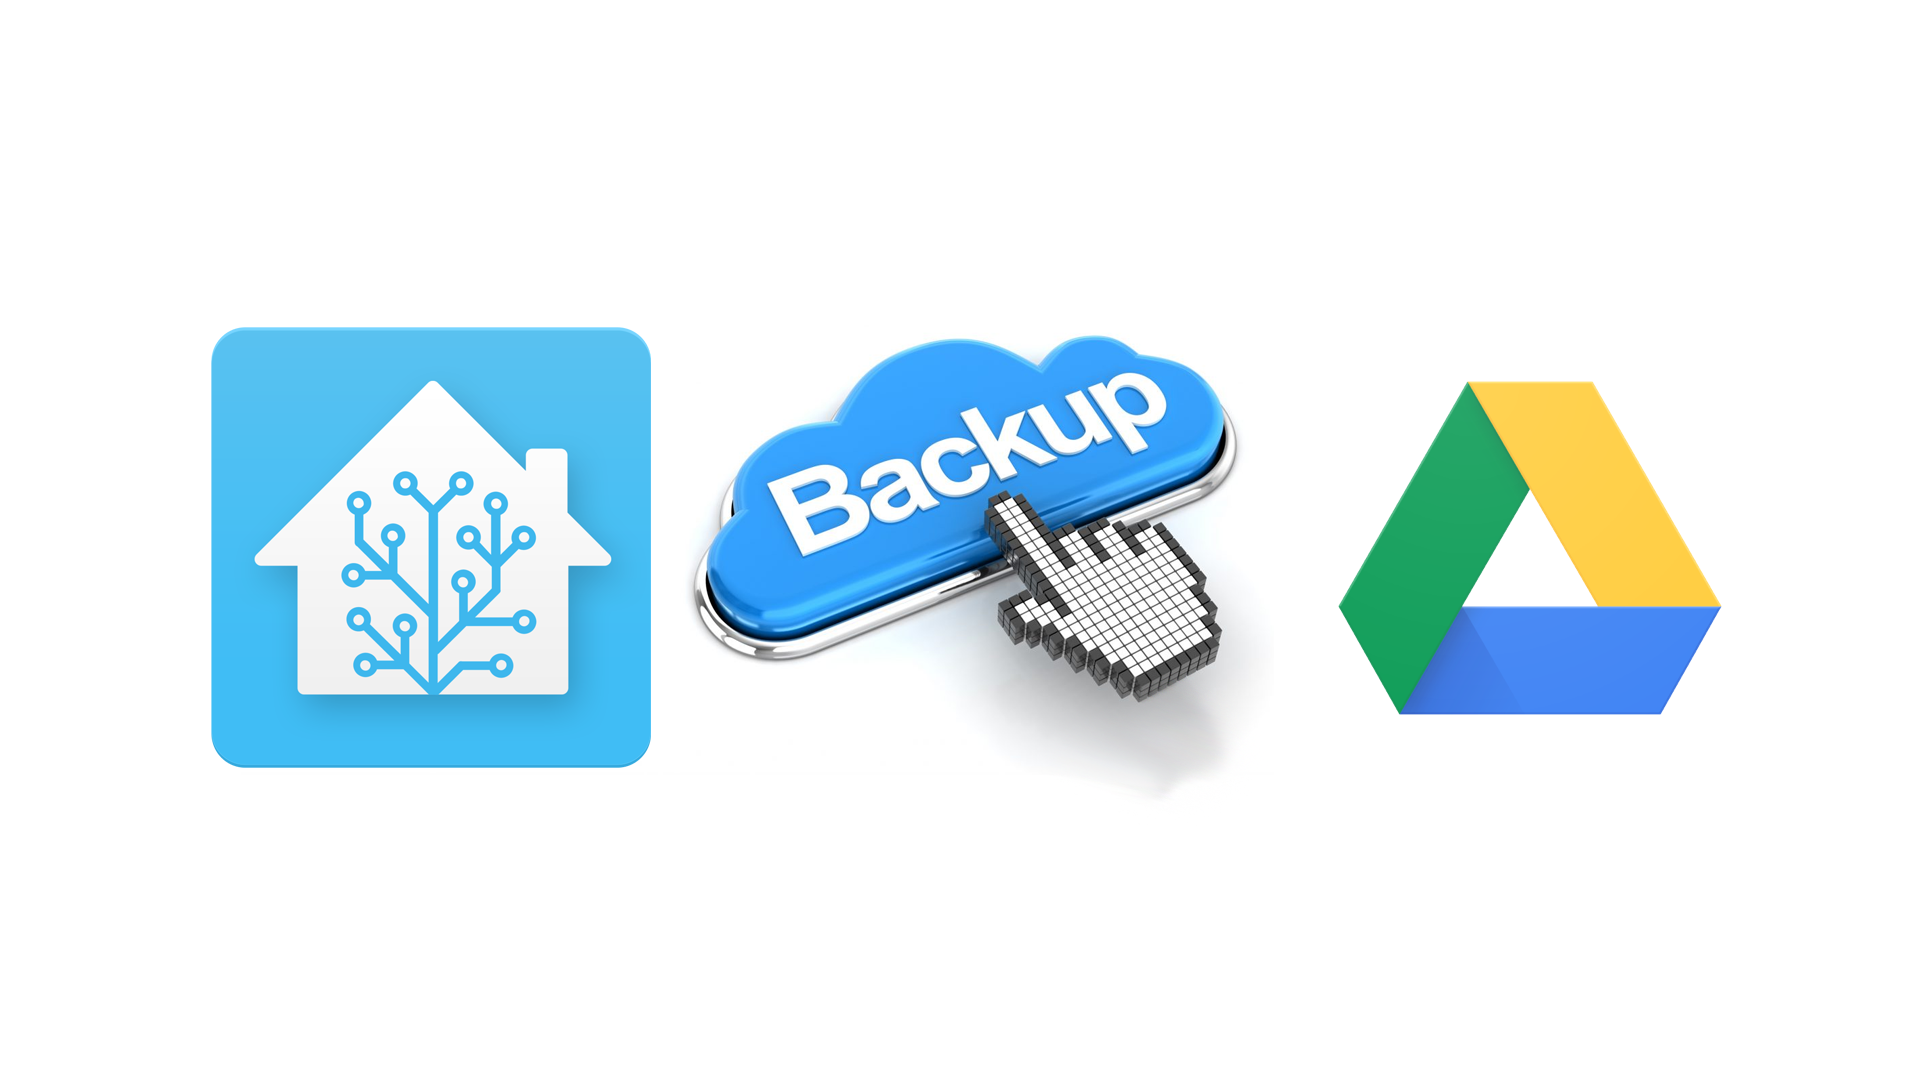 Home Assistant - Hass.io Google Drive Backup